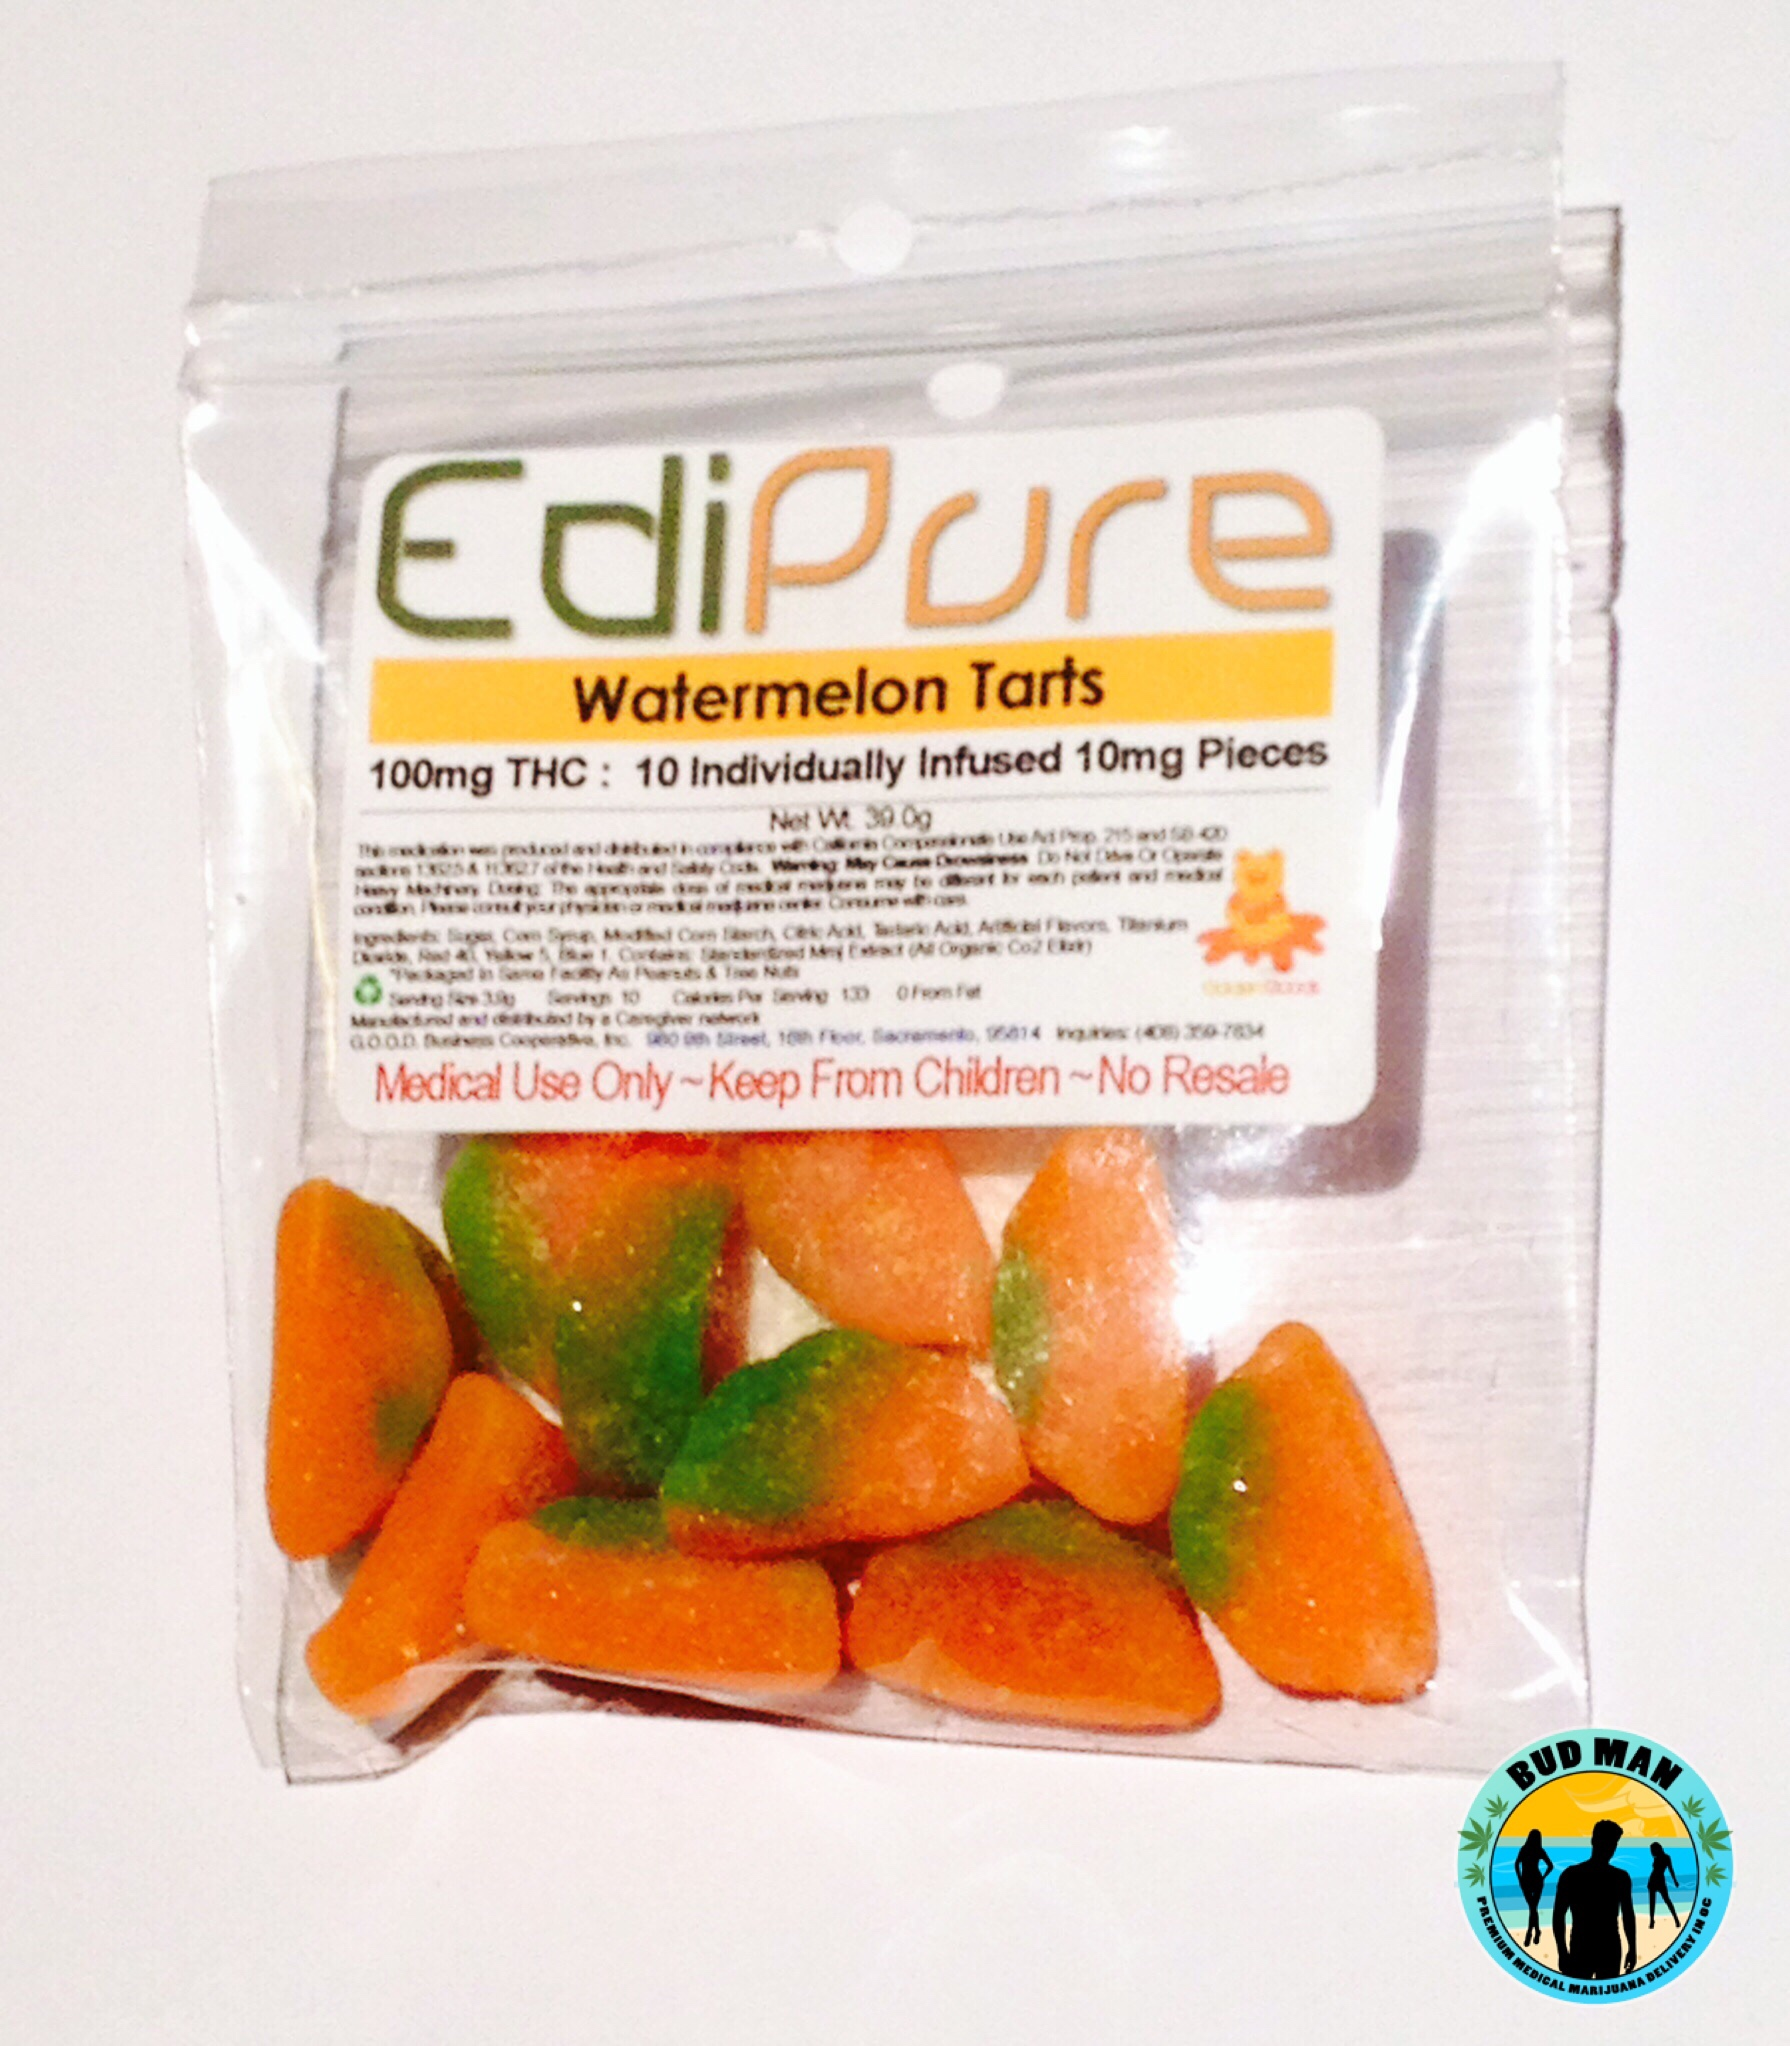 Watermelon Tarts – EdiPure (100mg) | Bud Man OC